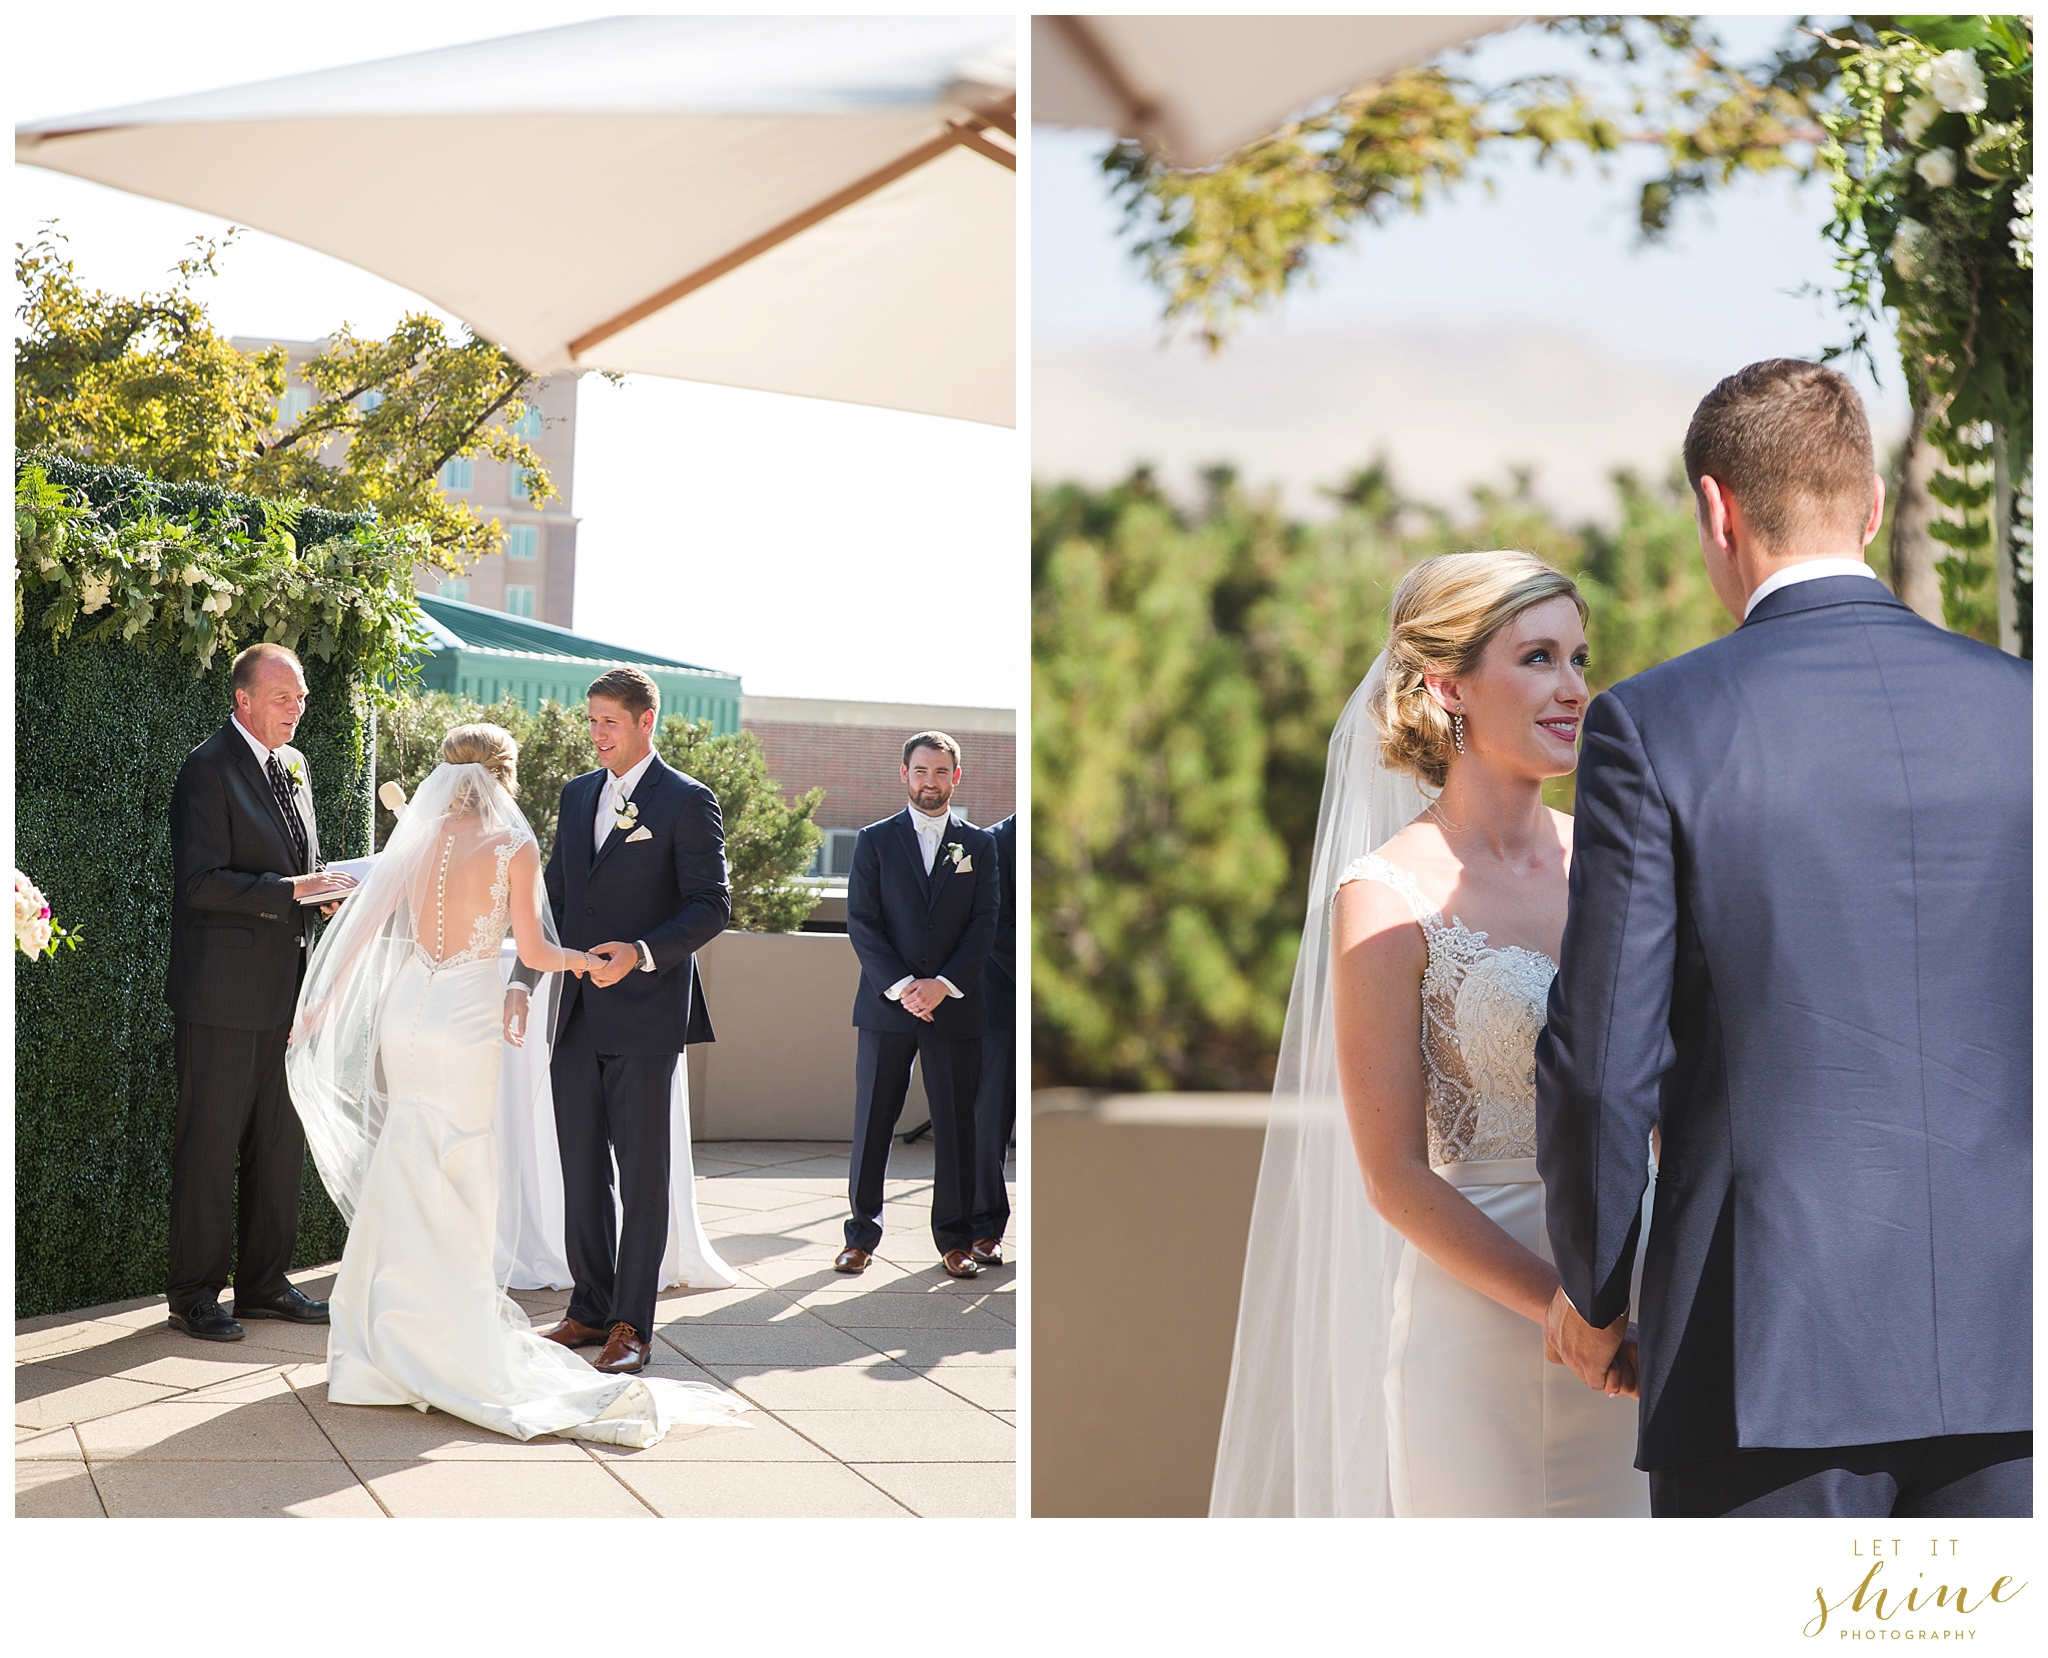 The Grove Hotel Boise Wedding 2017 Let it Shine Photography-0315.jpg